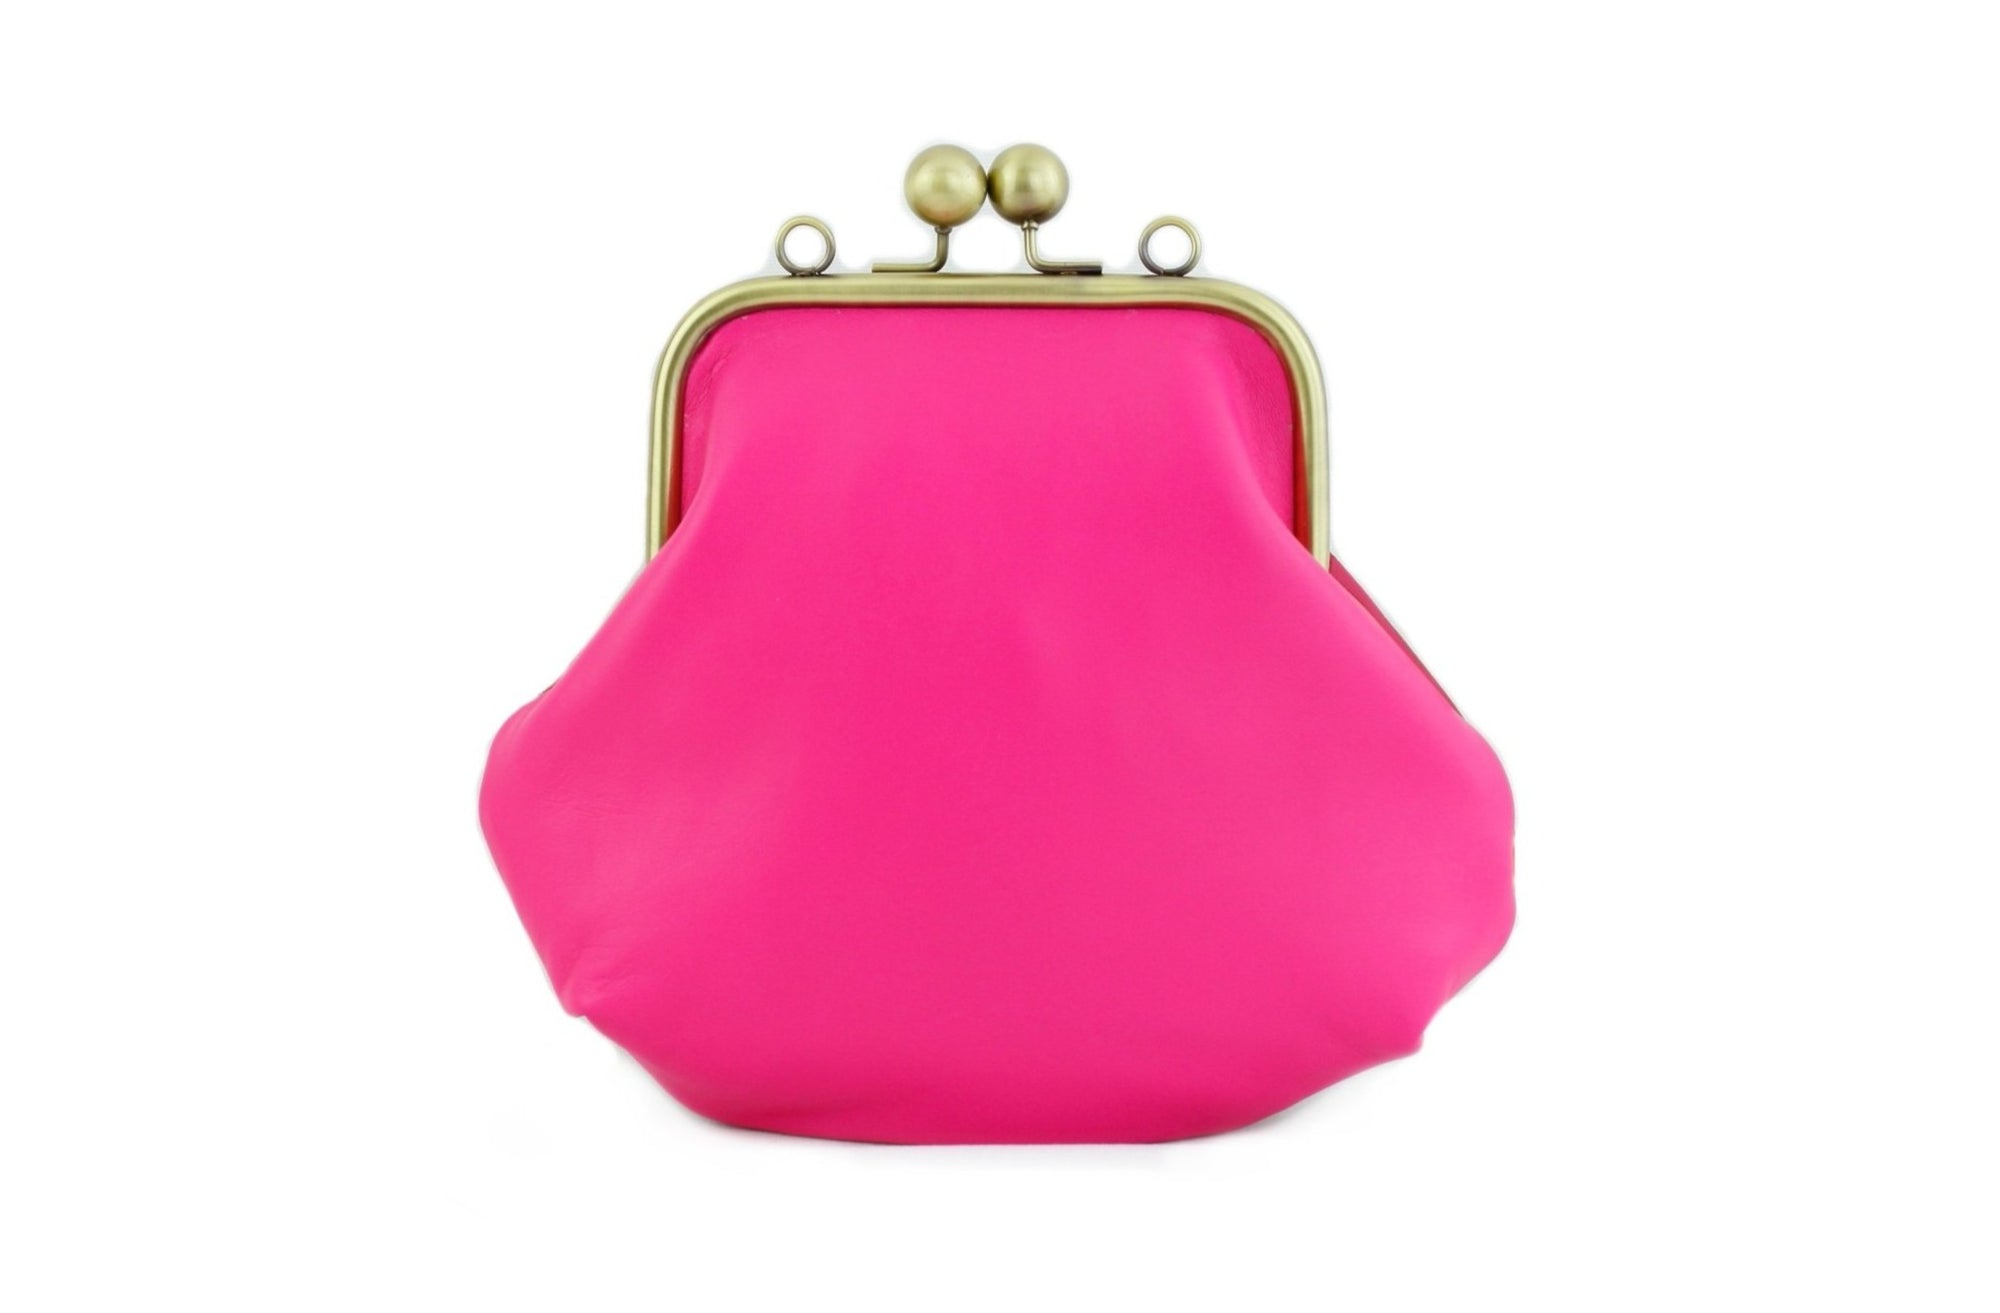 Hop Pink Leather Kisslock Bag with Strap (Limited Edition)